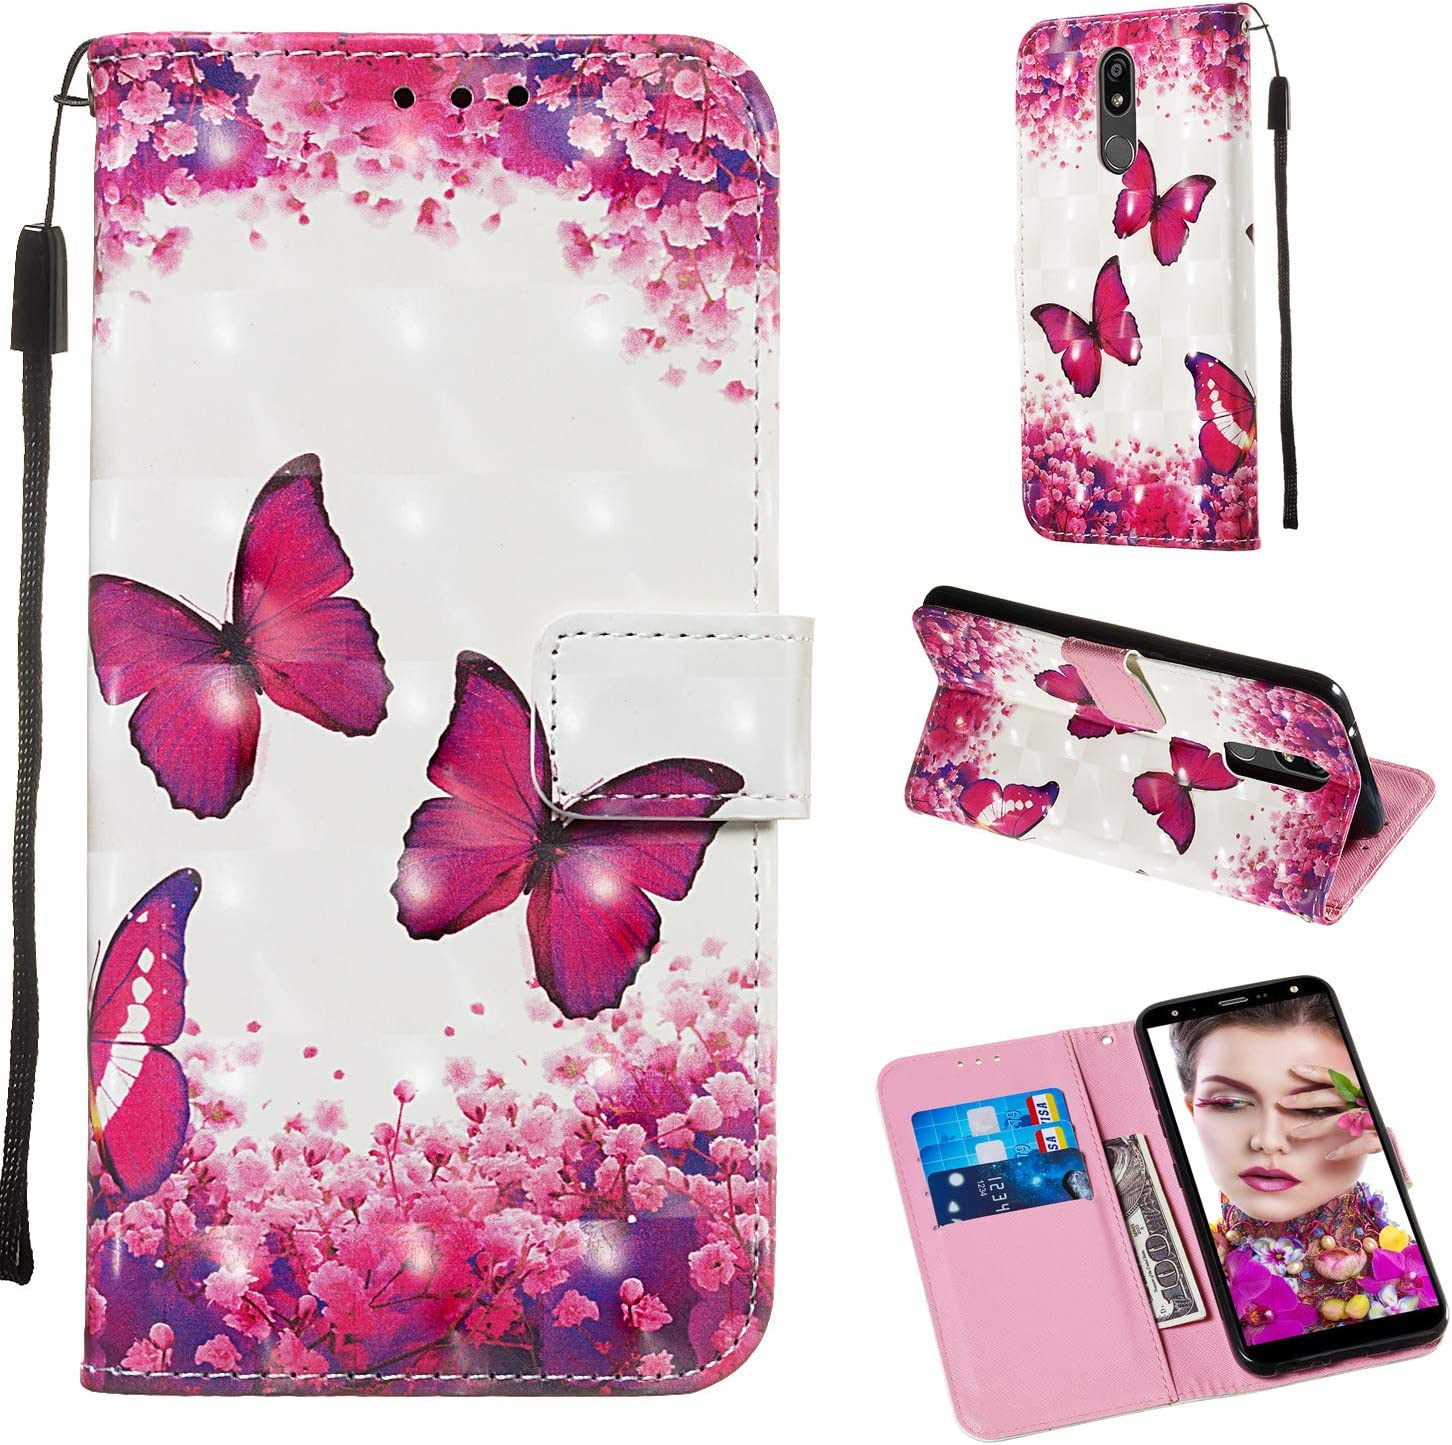 LG K40 Case,LG K12 Plus 2019 wallet case for Girls Women 3D Relief PU Leather Wallet Flip Cover with Credit Card Slot and Kickstand Magnetic Folio Case for LG K40 2019 / LG K12 Plus (Butterfly)